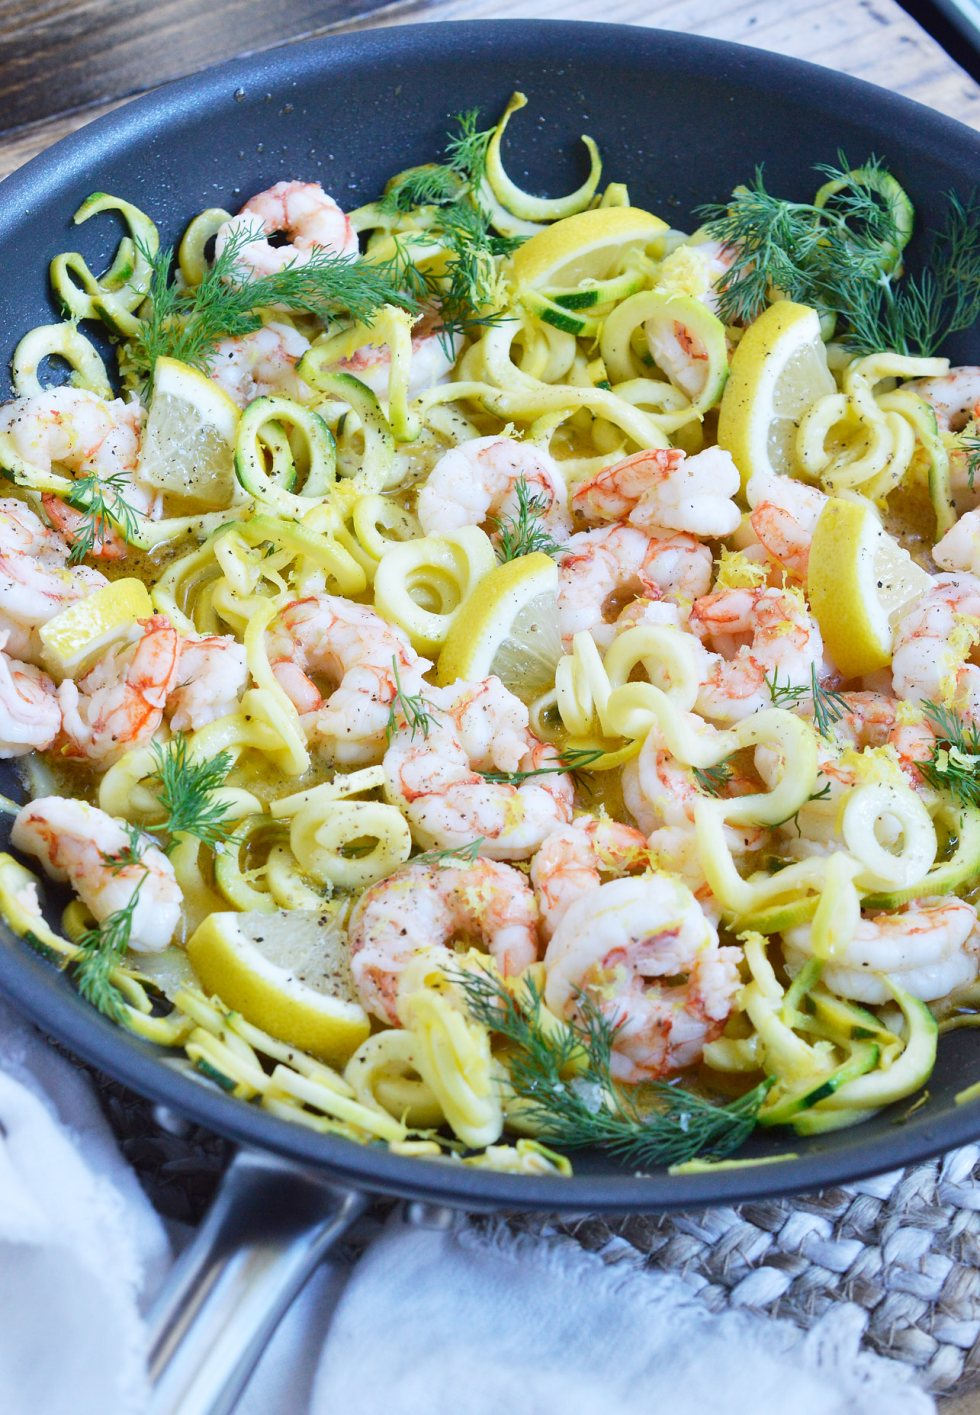 This Lemon Dill Shrimp Zucchini Noodle Recipe is a great way to start the New Year! A great lunch or dinner that is healthy, filling and Whole30 compliant. Shrimp and zoodles tossed with a lemon dill sauce makes a flavorful, nutritious meal!